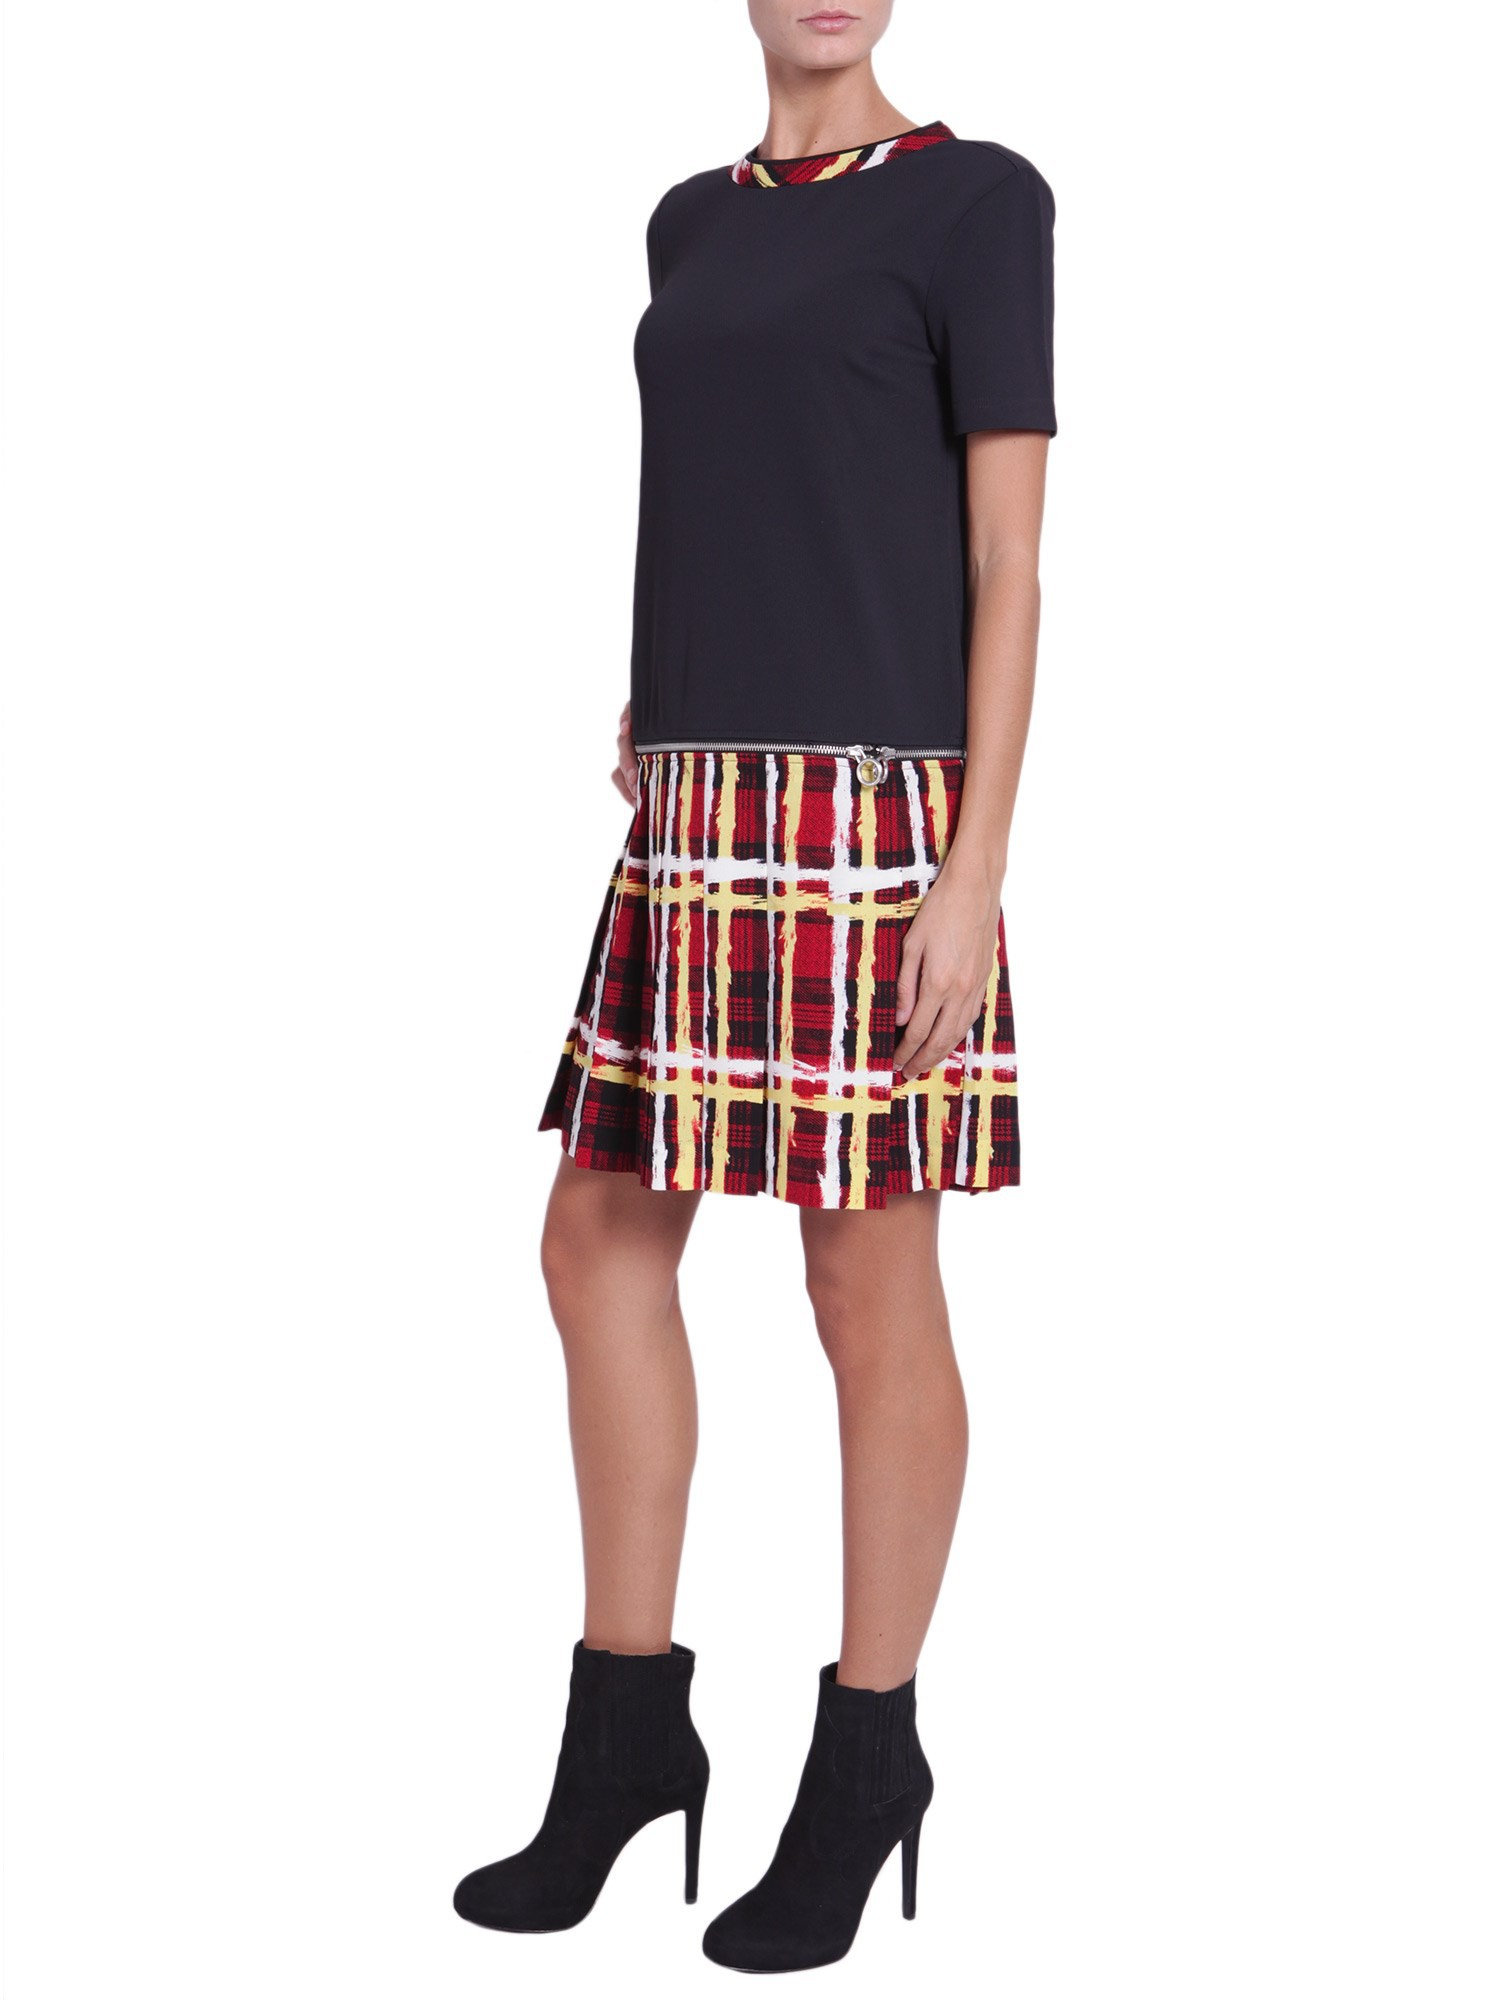 Shop for plaid skirt online at Target. Free shipping on purchases over $35 and save 5% every day with your Target REDcard.